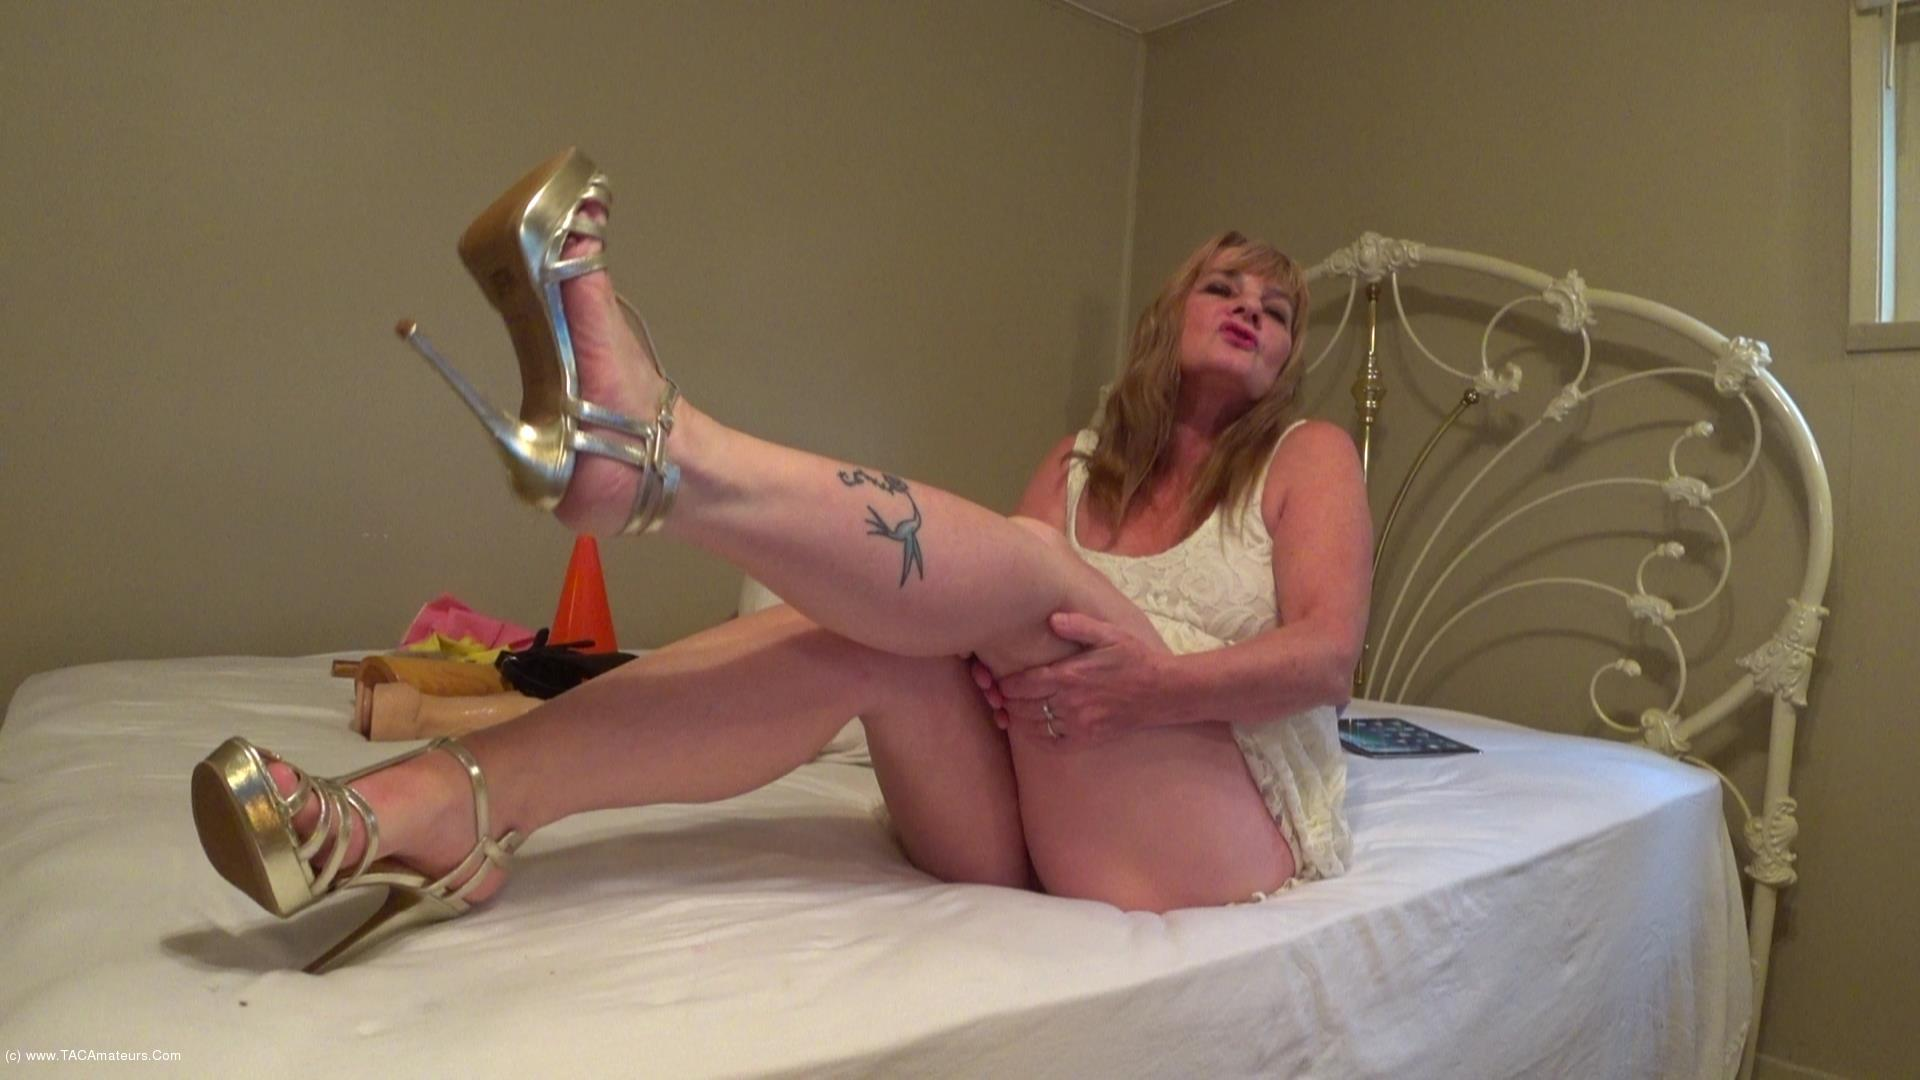 CougarBabeJolee - Barefoot In My Strappy Sandals Cum Worship Pt2 scene 1